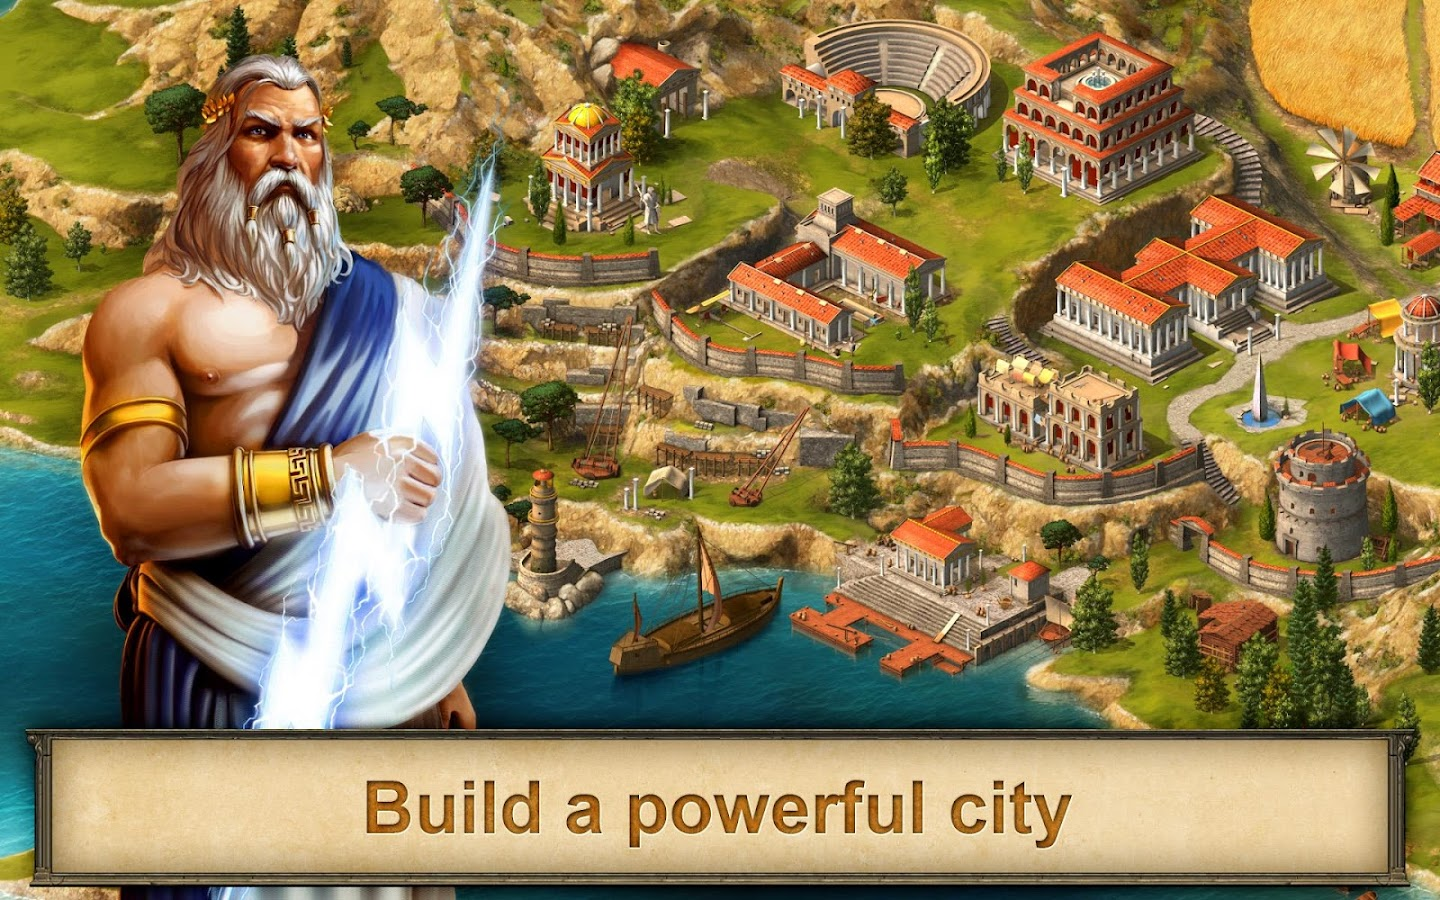 Grepolis divine strategy mmo 21710 apk download android grepolis divine strategy mmo 21710 screenshot 2 gumiabroncs Choice Image